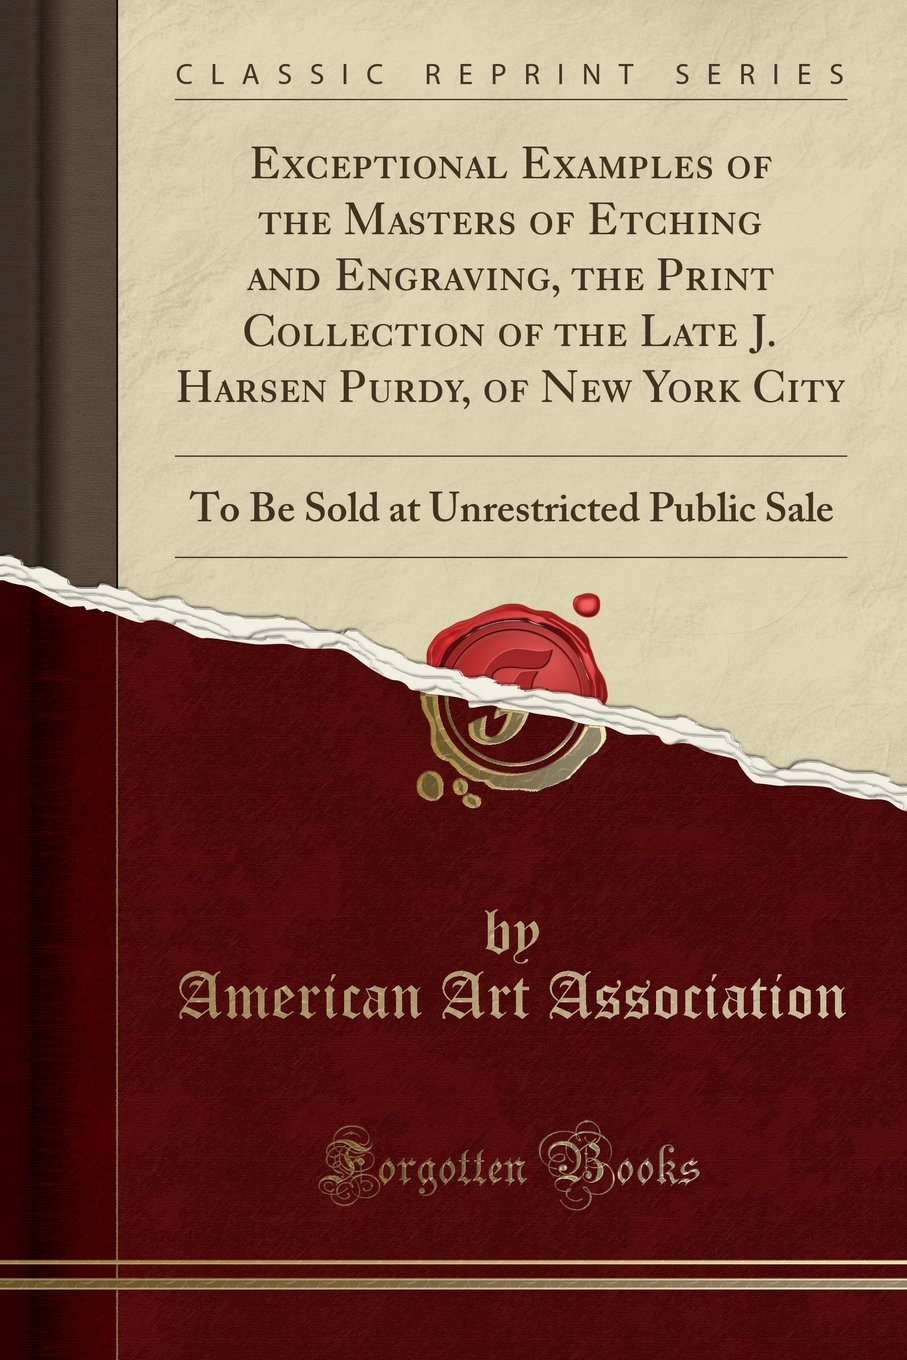 Exceptional Examples of the Masters of Etching and Engraving, the Print Collection of the Late J. Harsen Purdy, of New York City: To Be Sold at Unrestricted Public Sale (Classic Reprint) PDF